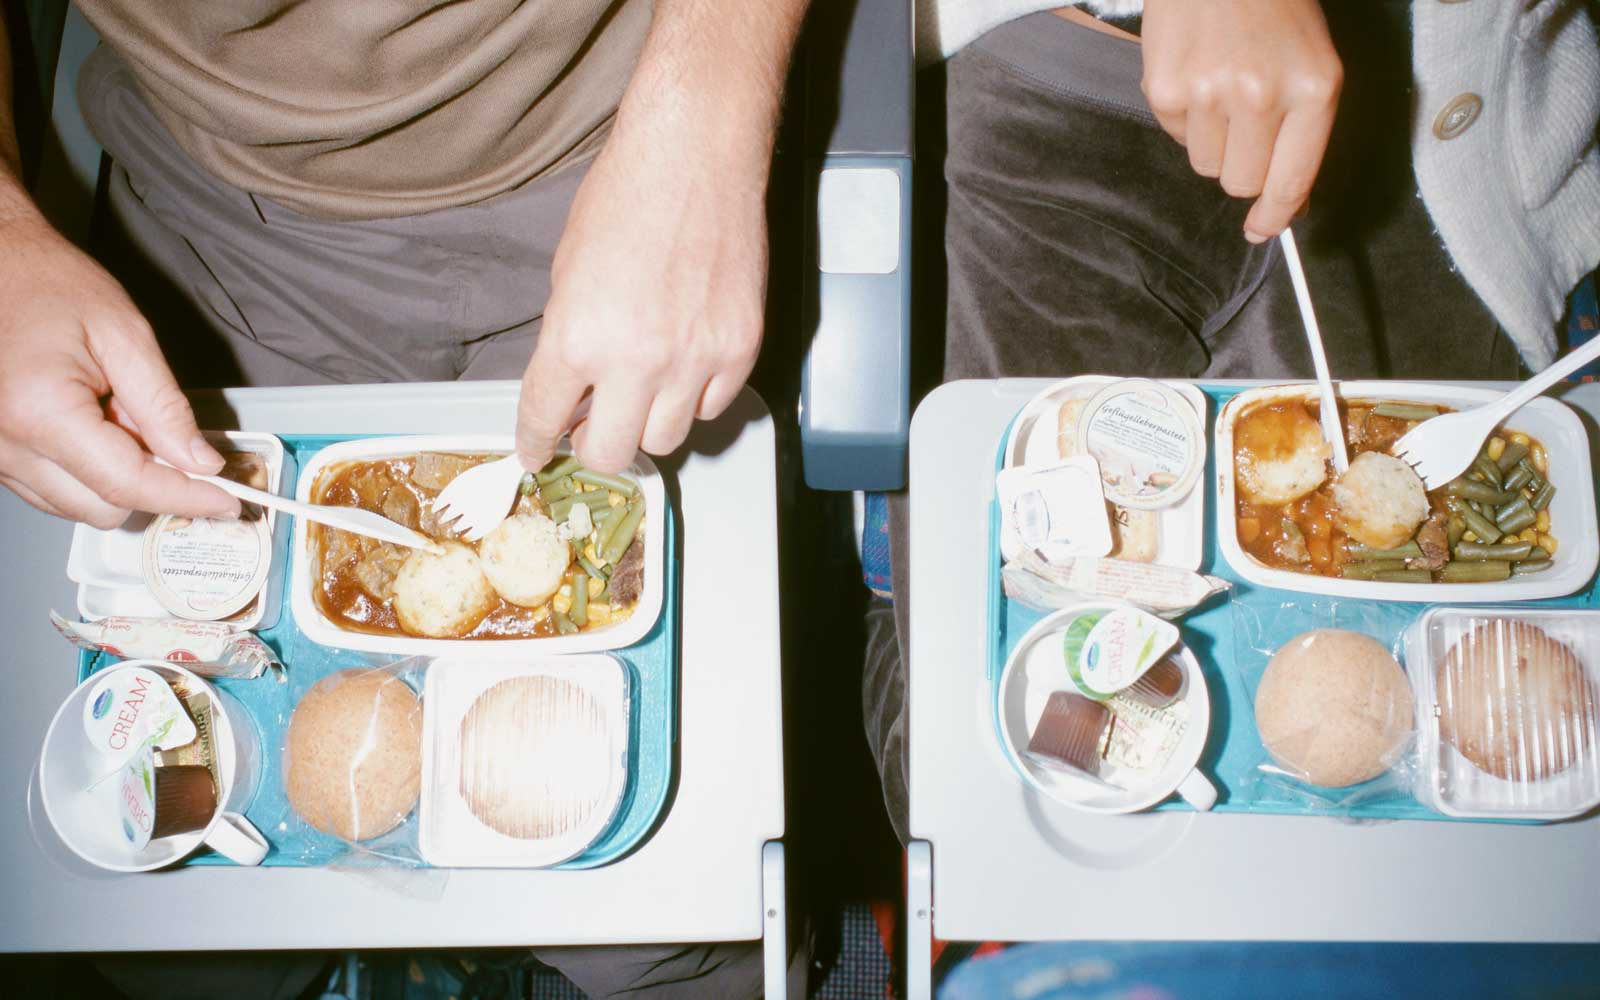 Young couple eating meals during a flight